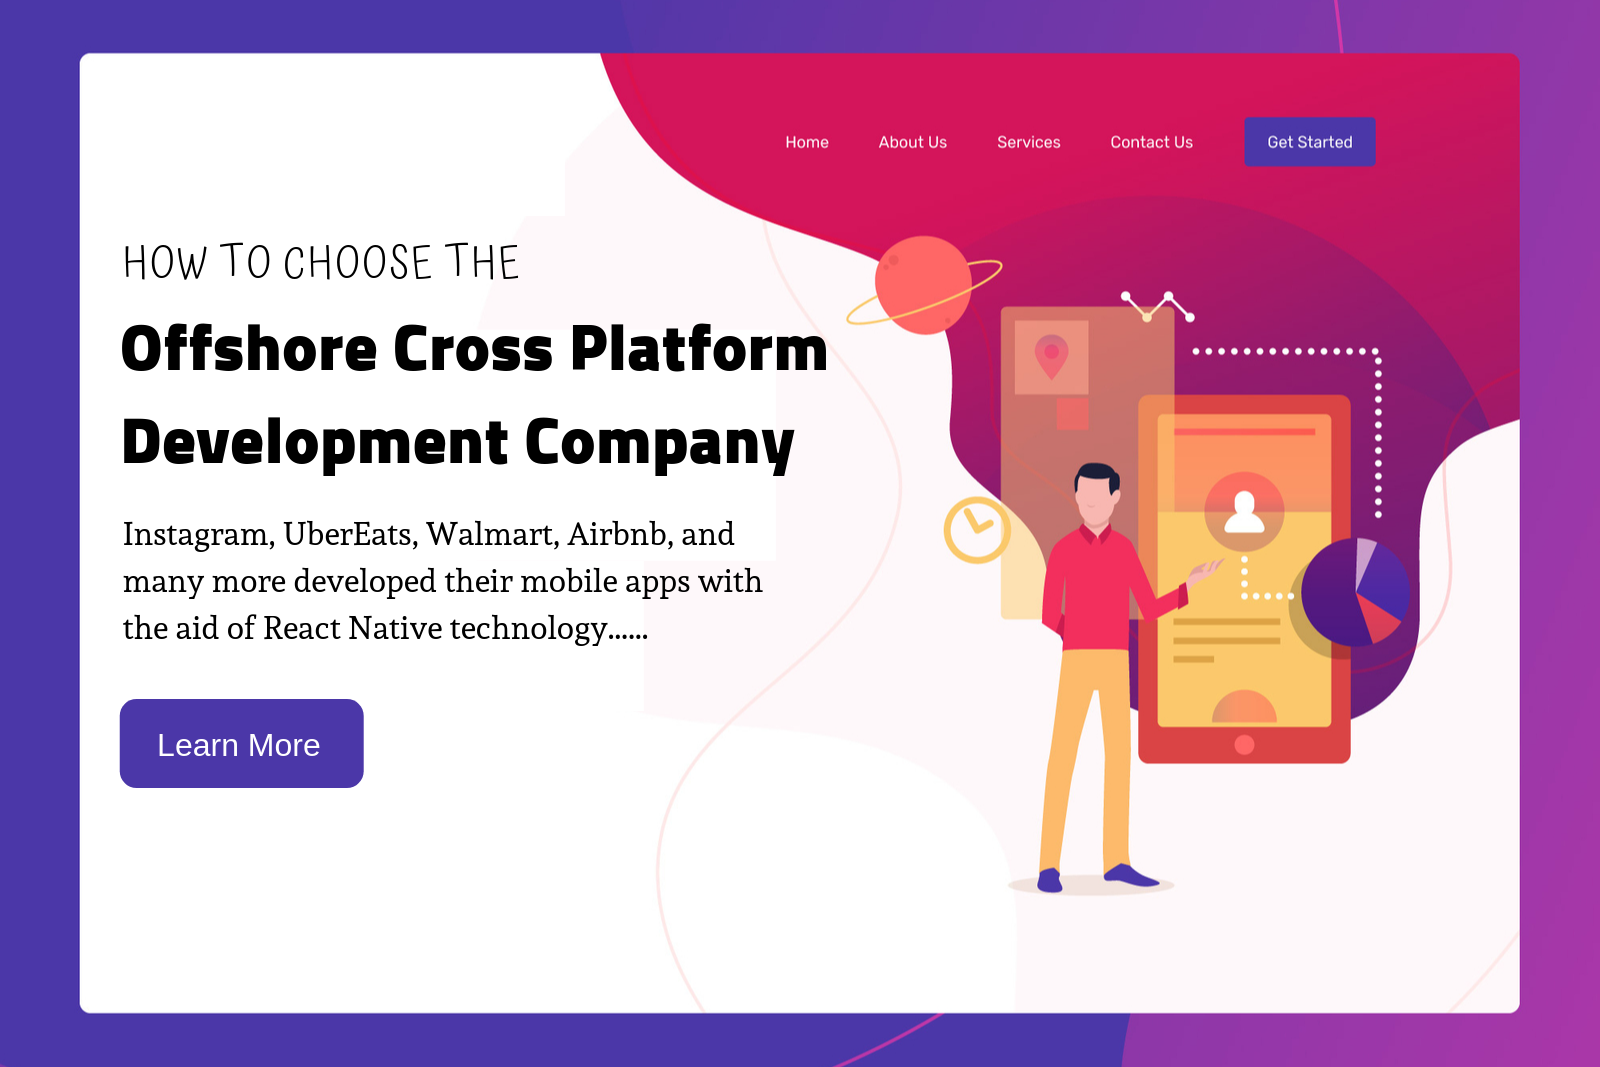 How to Choose the offshore cross platform development company